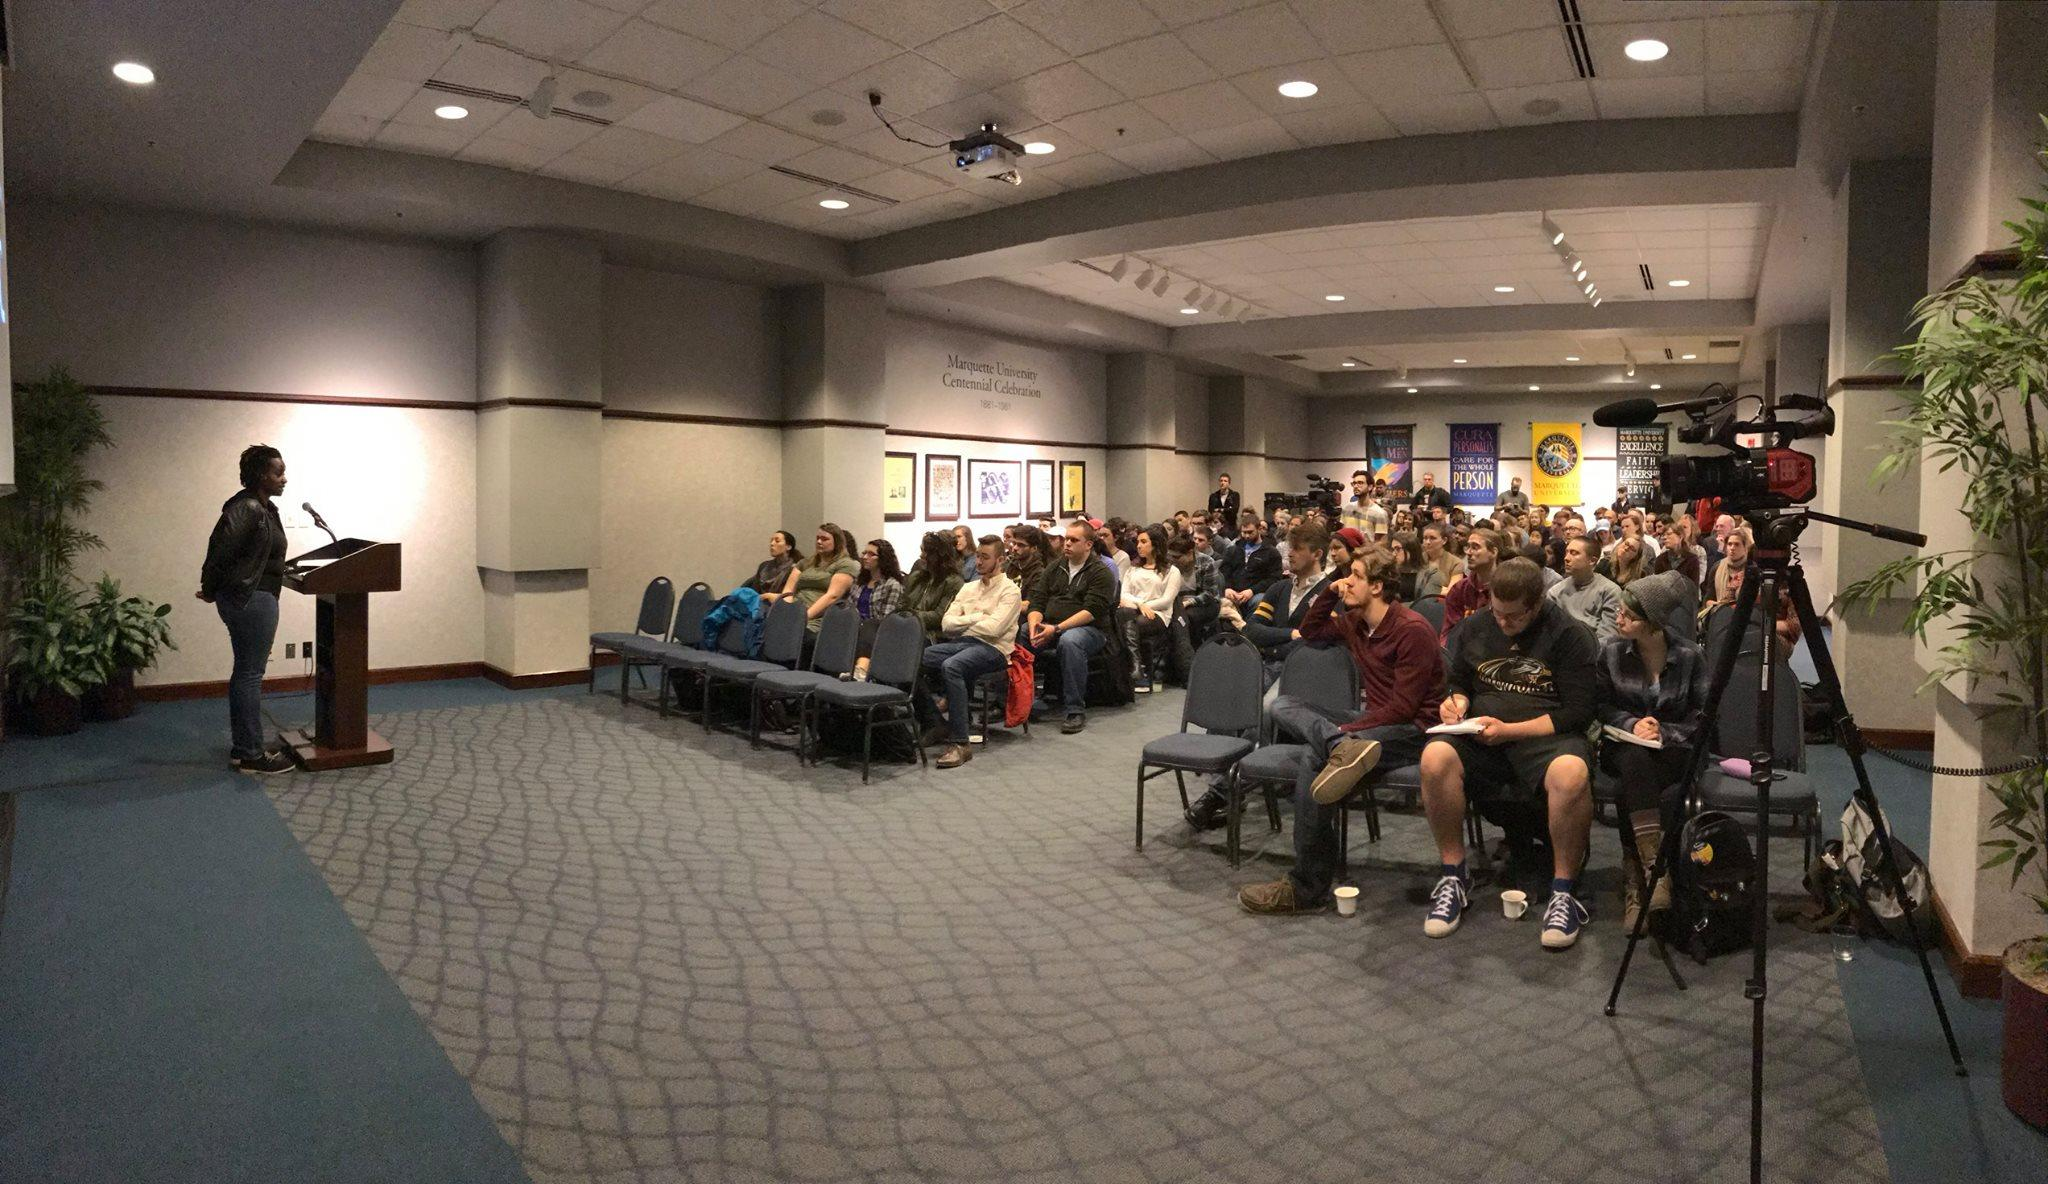 Clare Byarugaba came to visit Marquette's campus from Uganda to share her experiences as a LGBTQ+ activist. Photo via Marquette Democracy Facebook page